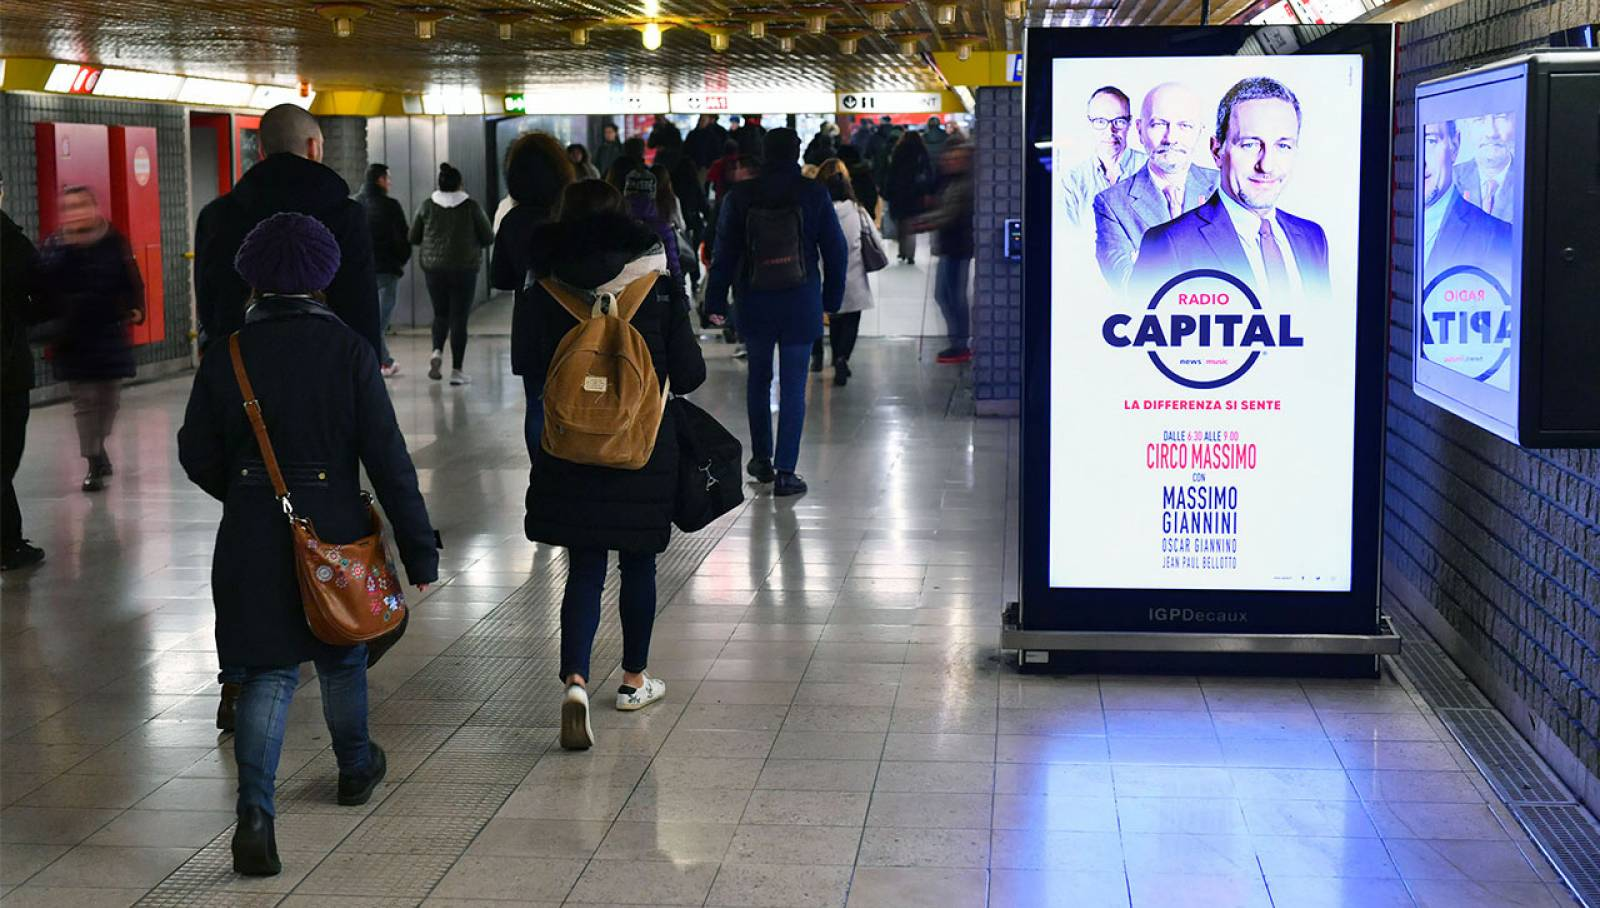 Out of Home advertising IGPDecaux in Milan Underground Vision Network for Radio Capital